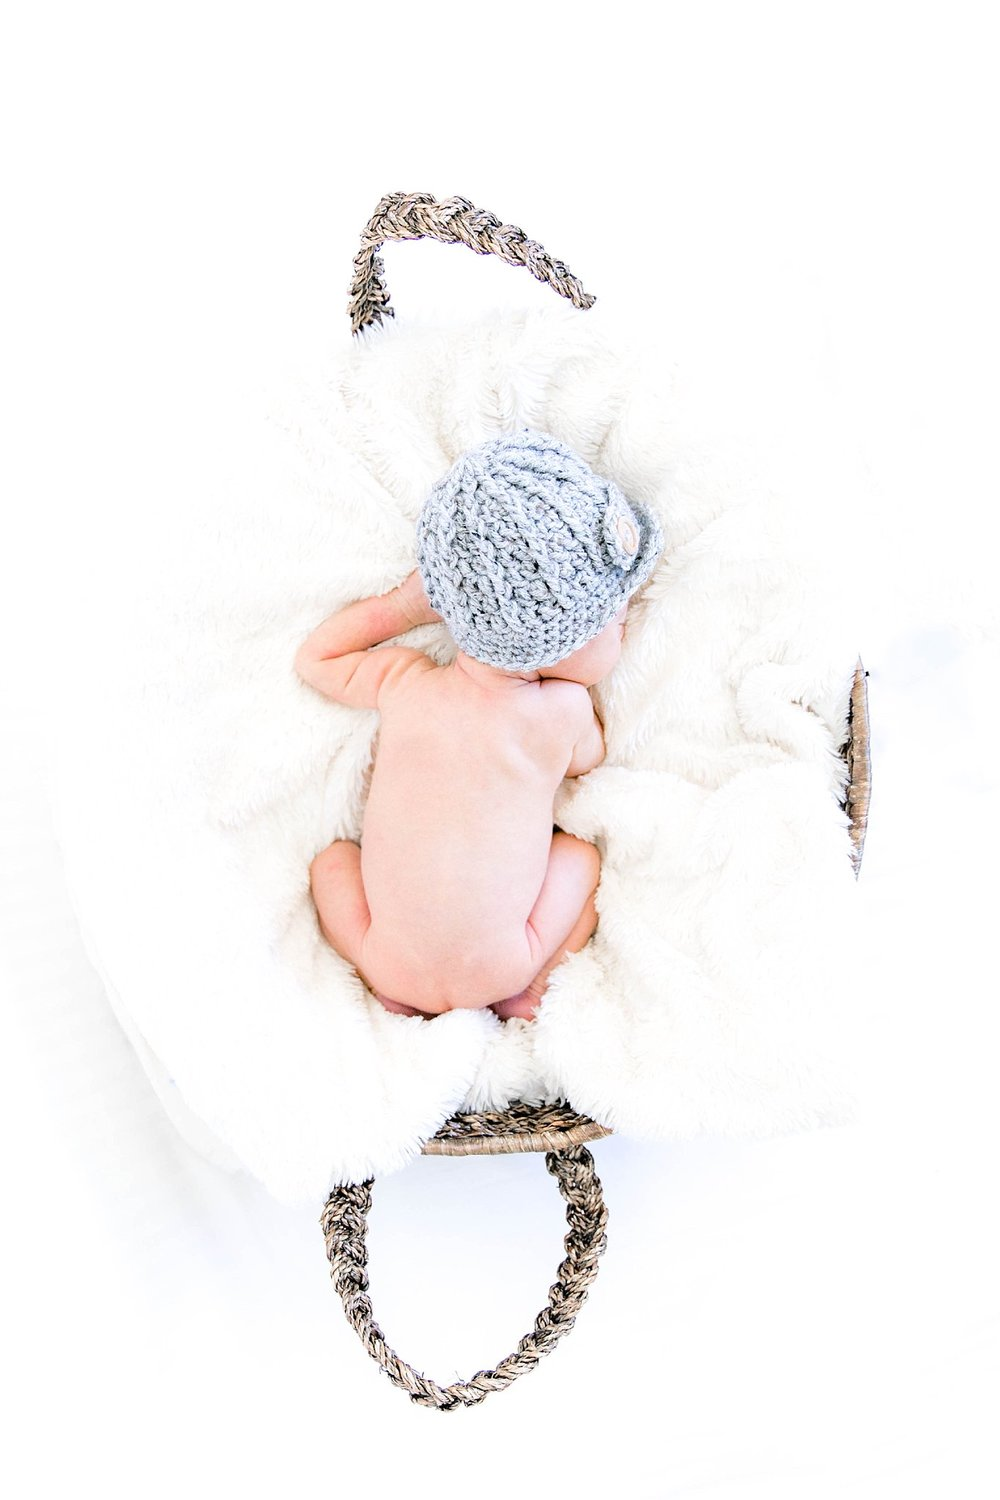 Newborn photography, Johnson City TN photographer, Tri Cities TN newborn photographer, family photography, cute baby boy, bright and airy newborn photos, sibling love, baby brother